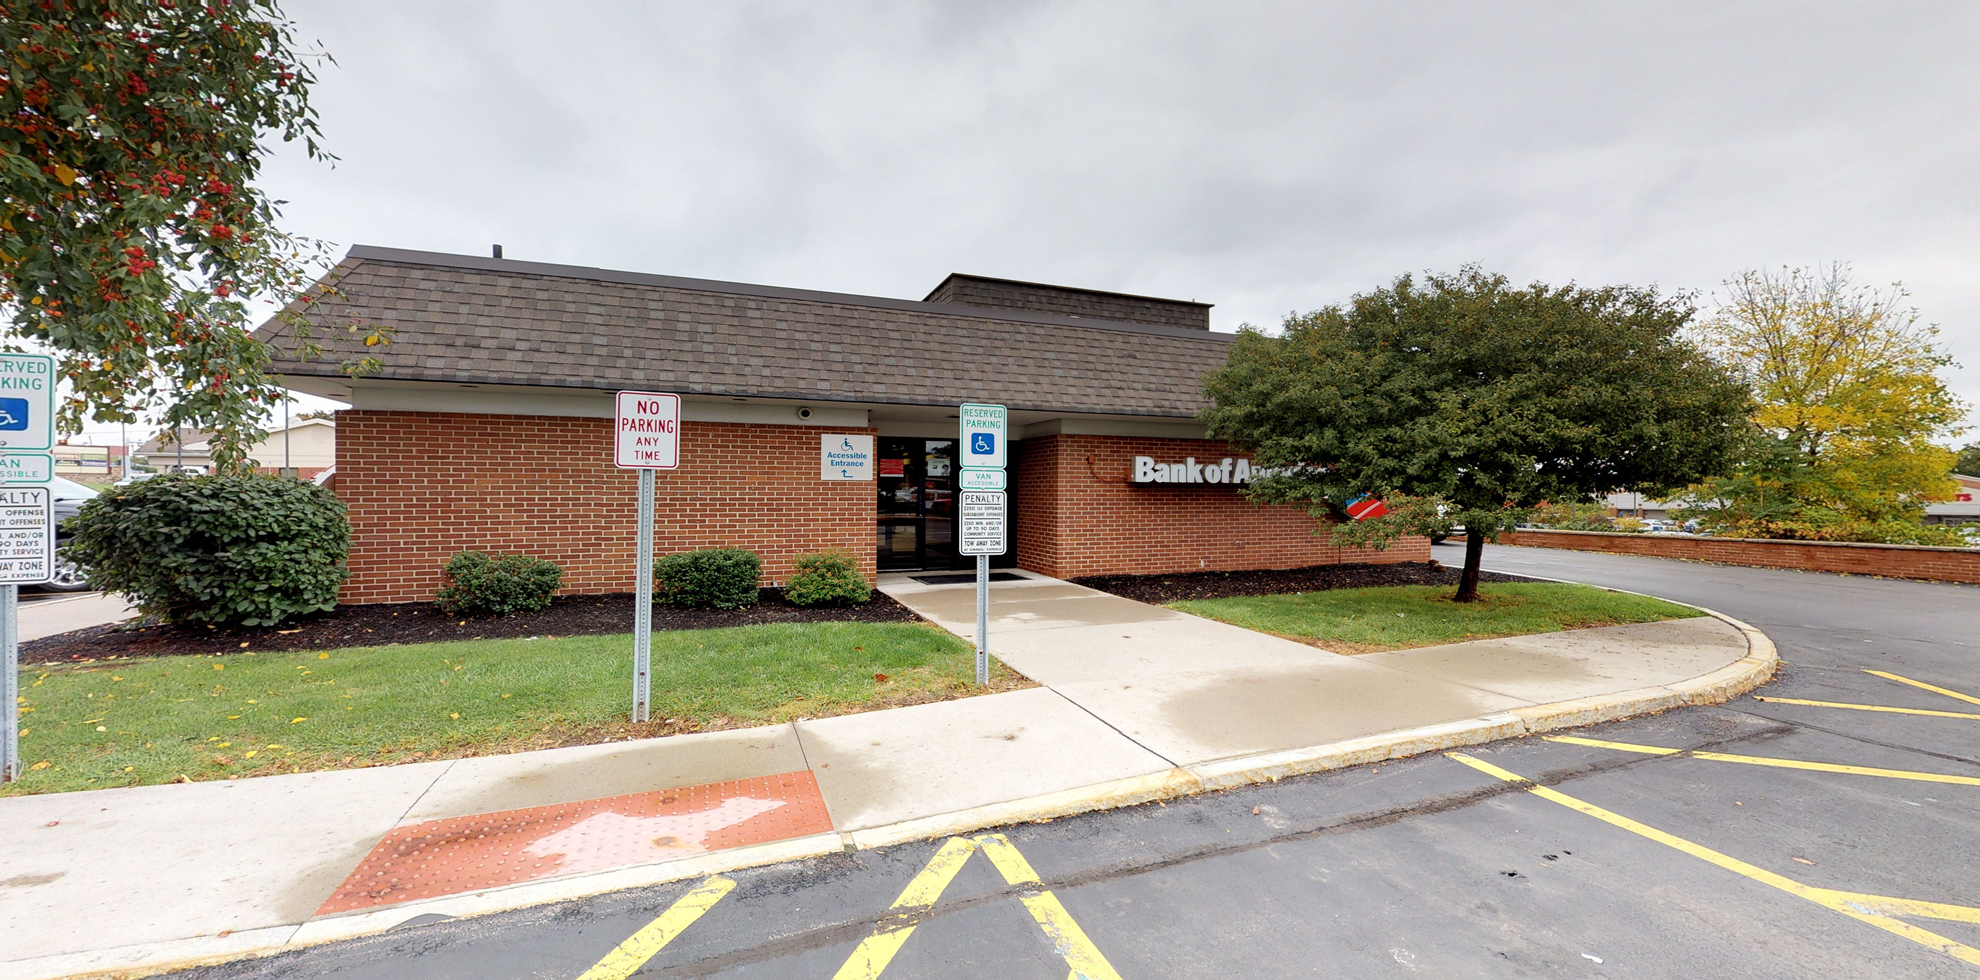 Bank of America financial center with drive-thru ATM   980 Ridge Rd, Webster, NY 14580